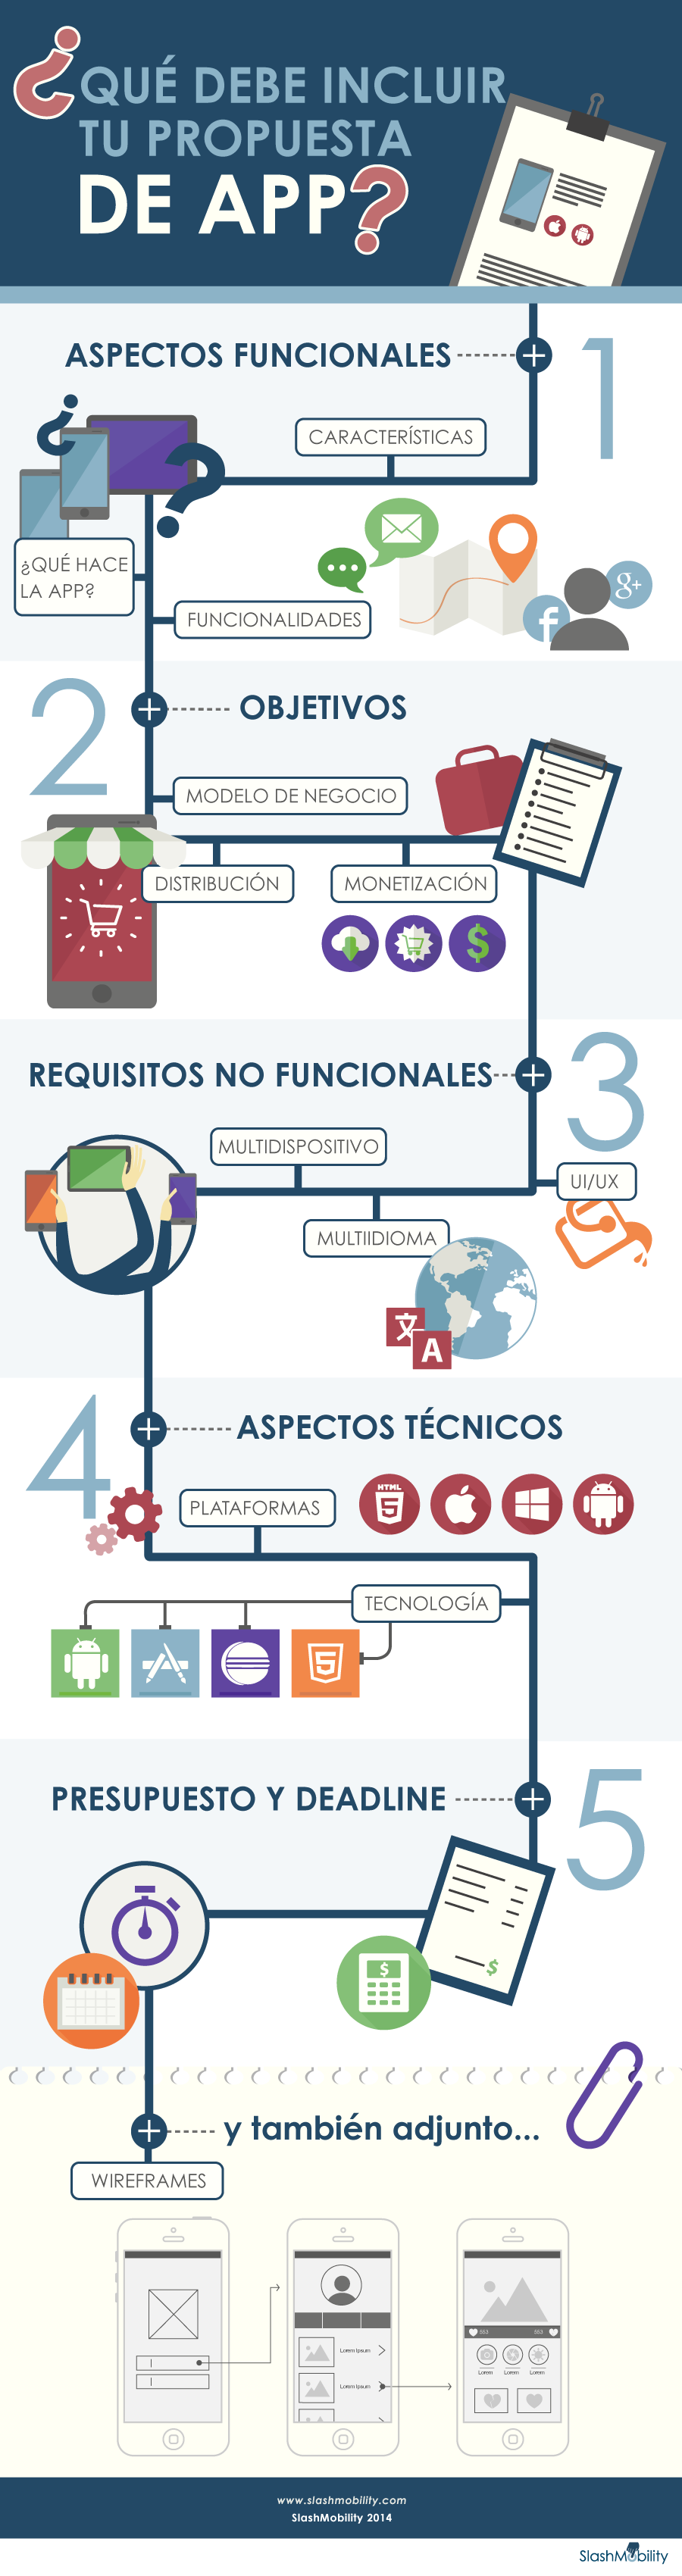 infografia_briefing_es